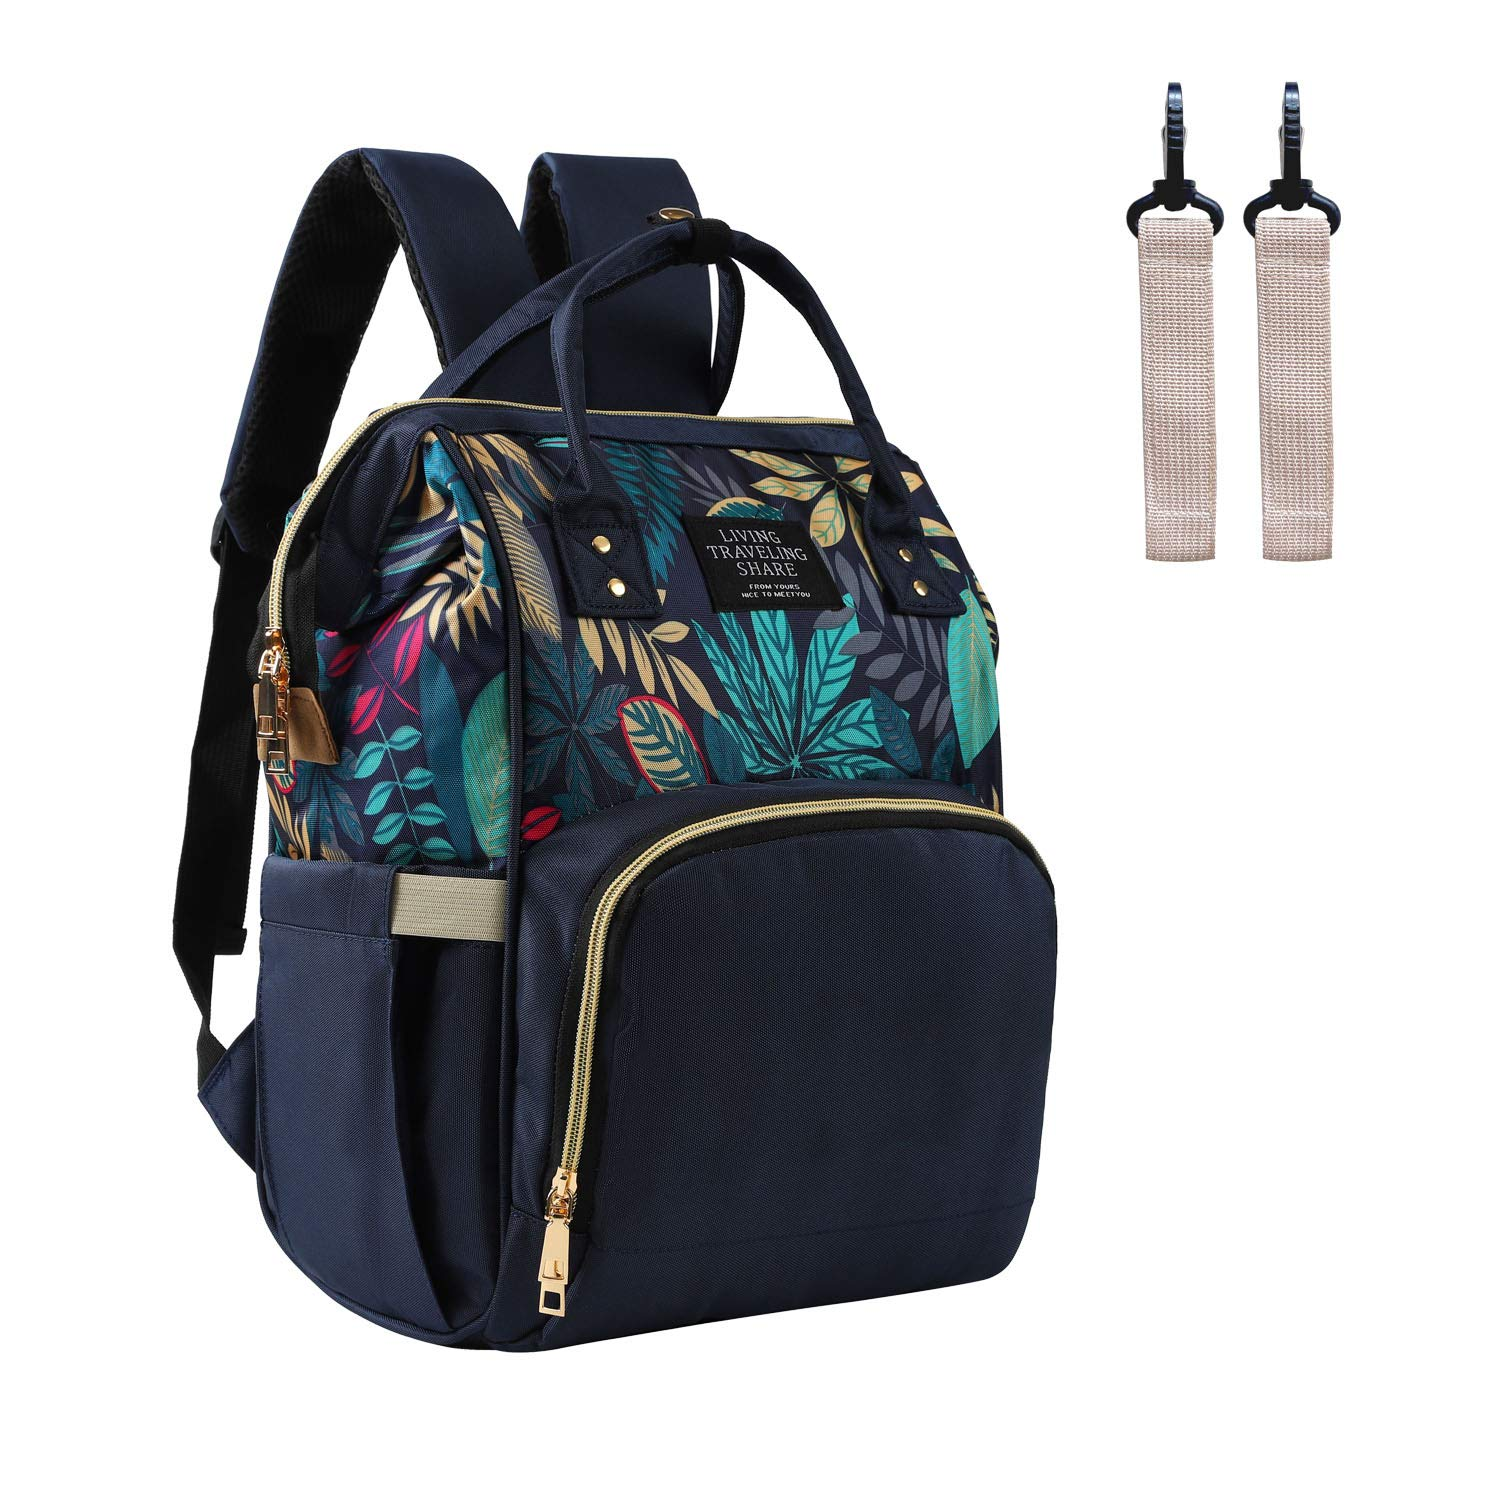 Diaper Bag Backpack Waterproof Maternity Diaper Bags for Baby Girl and Boy,Mufti-Functional Nappy Travel Backpack with Stroller Hook Large Capacity Baby Bag,Royal Blue